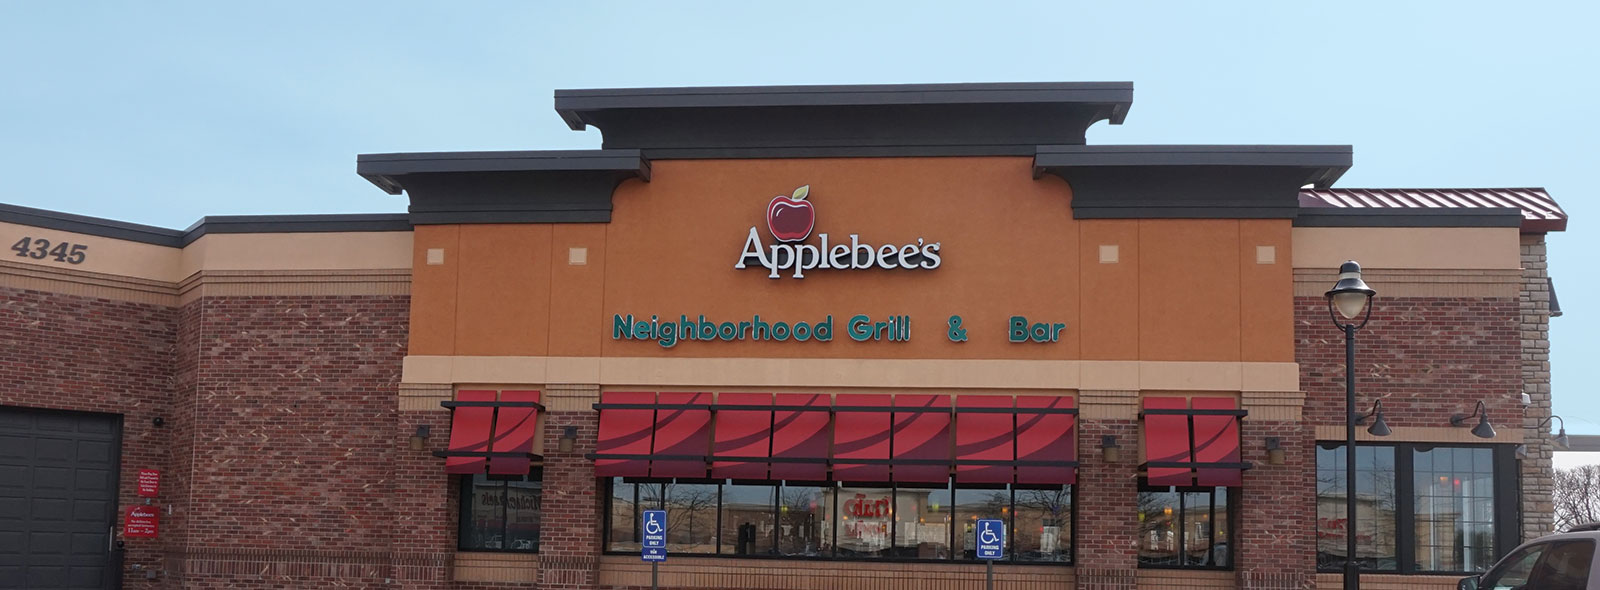 Applebee's 2 for $20 Menu